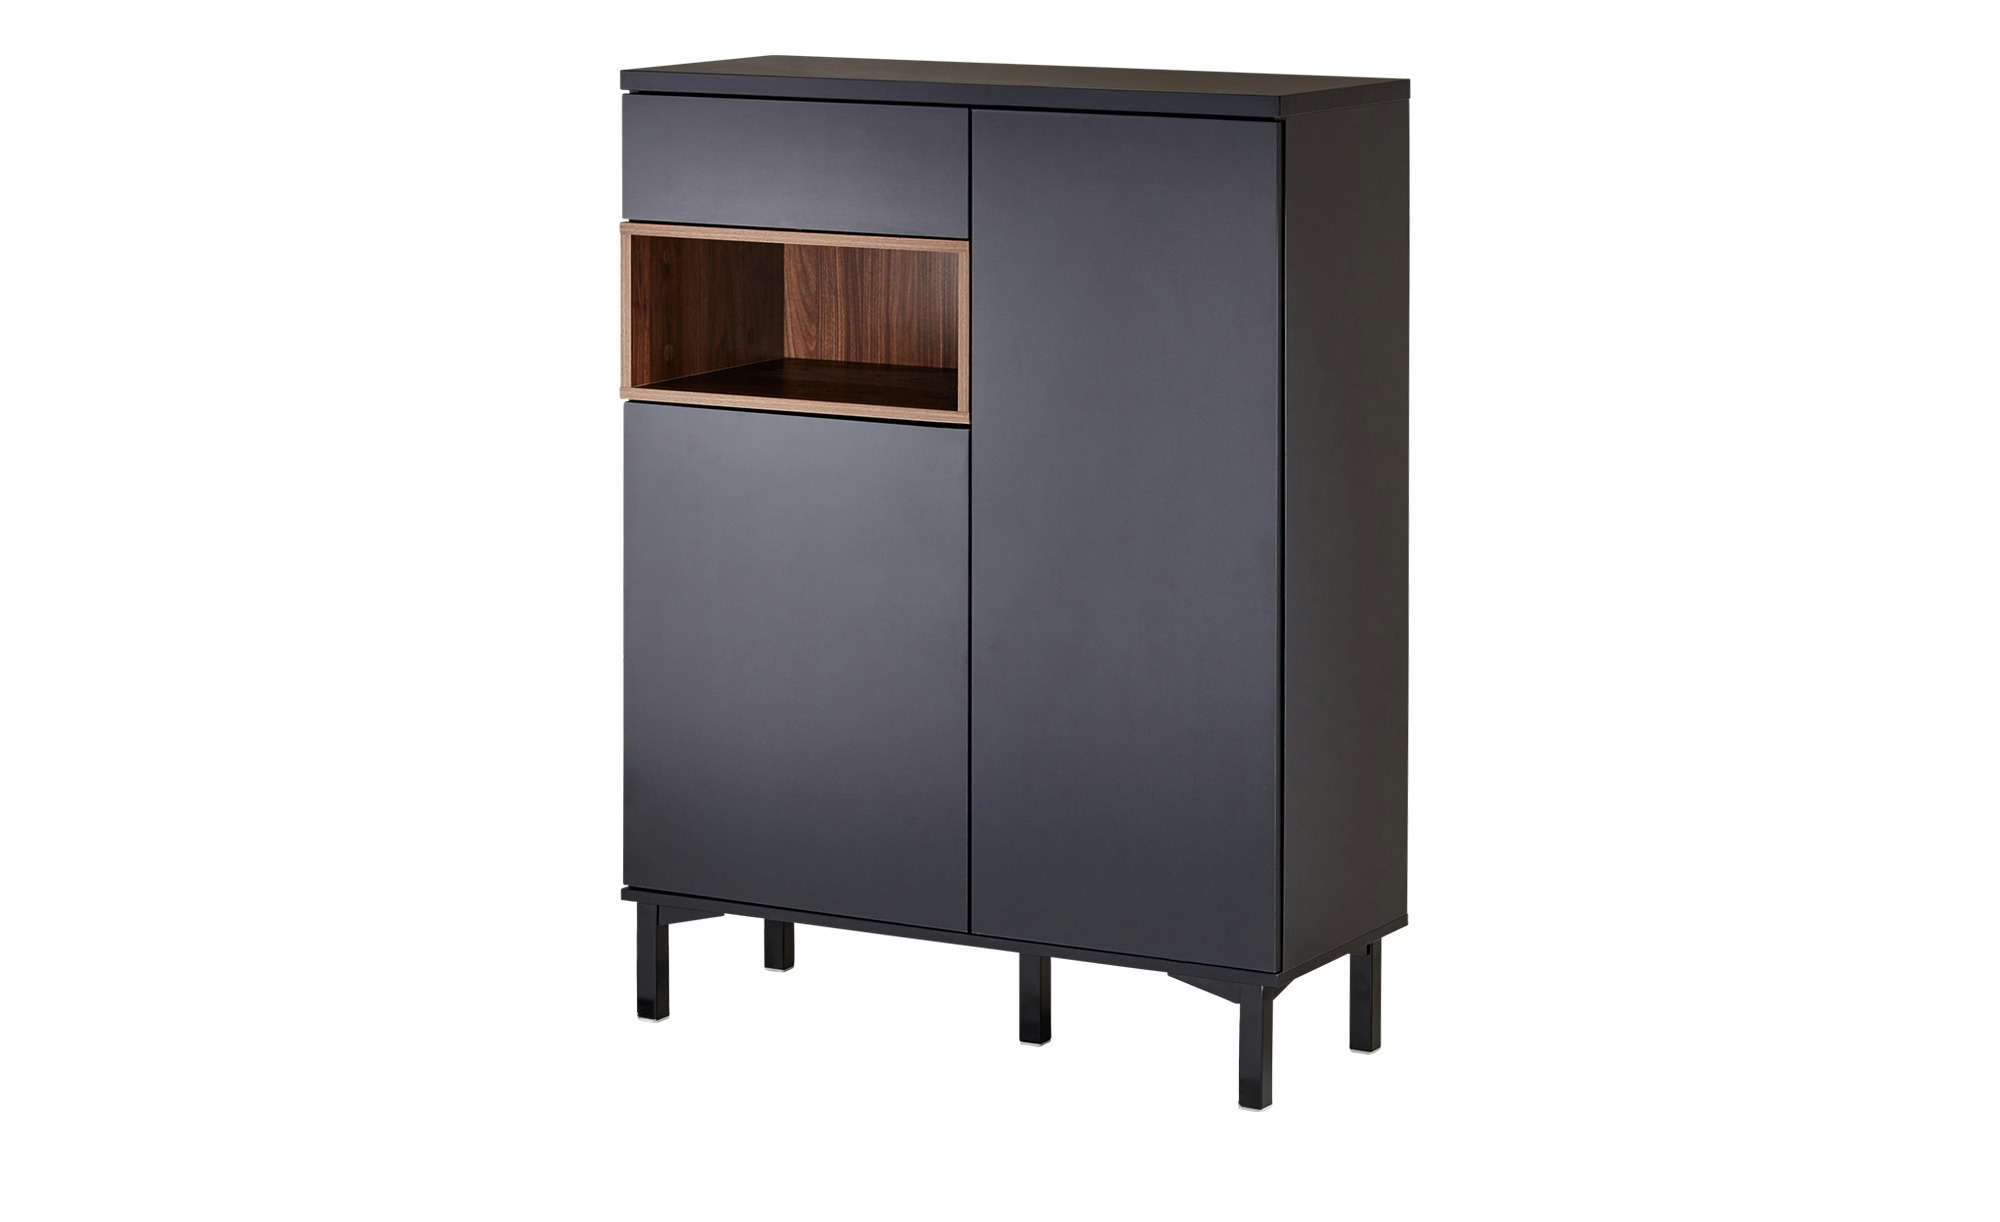 Roomers Highboard  Case ¦ schwarz ¦ Maße (cm): B: 90 H: 120 T: 36 Kommoden & Sideboards > Kommoden - Höffner